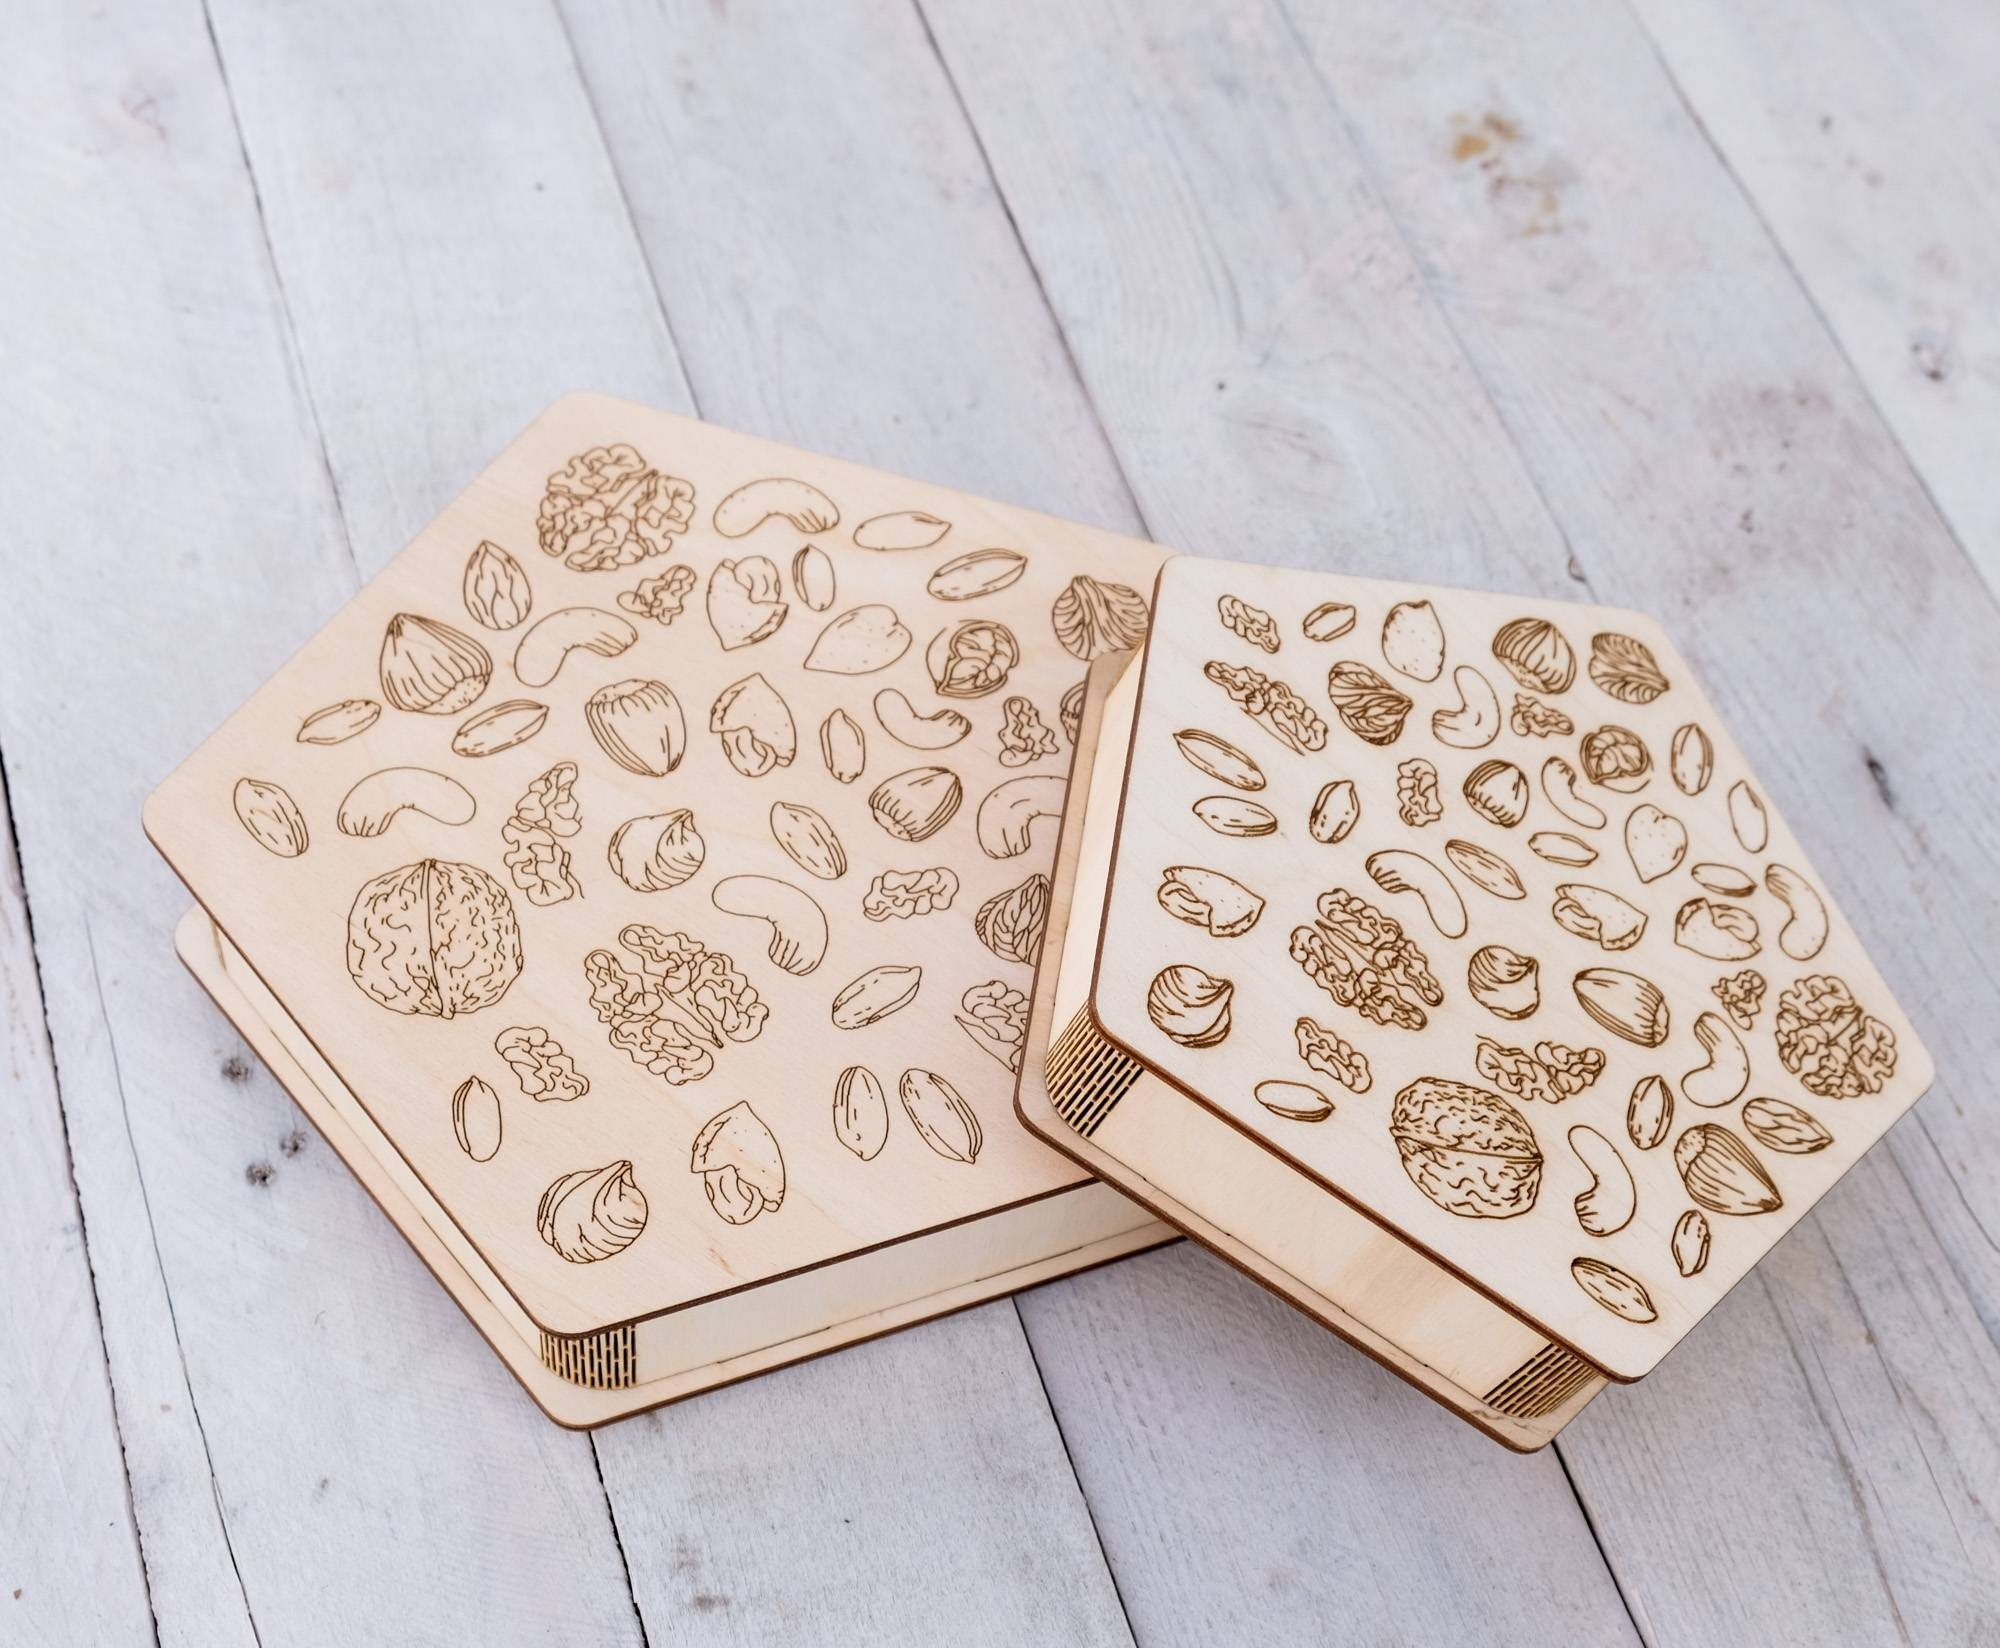 Laser Engraving For Nuts Wooden Gift Box Free CDR Vectors Art